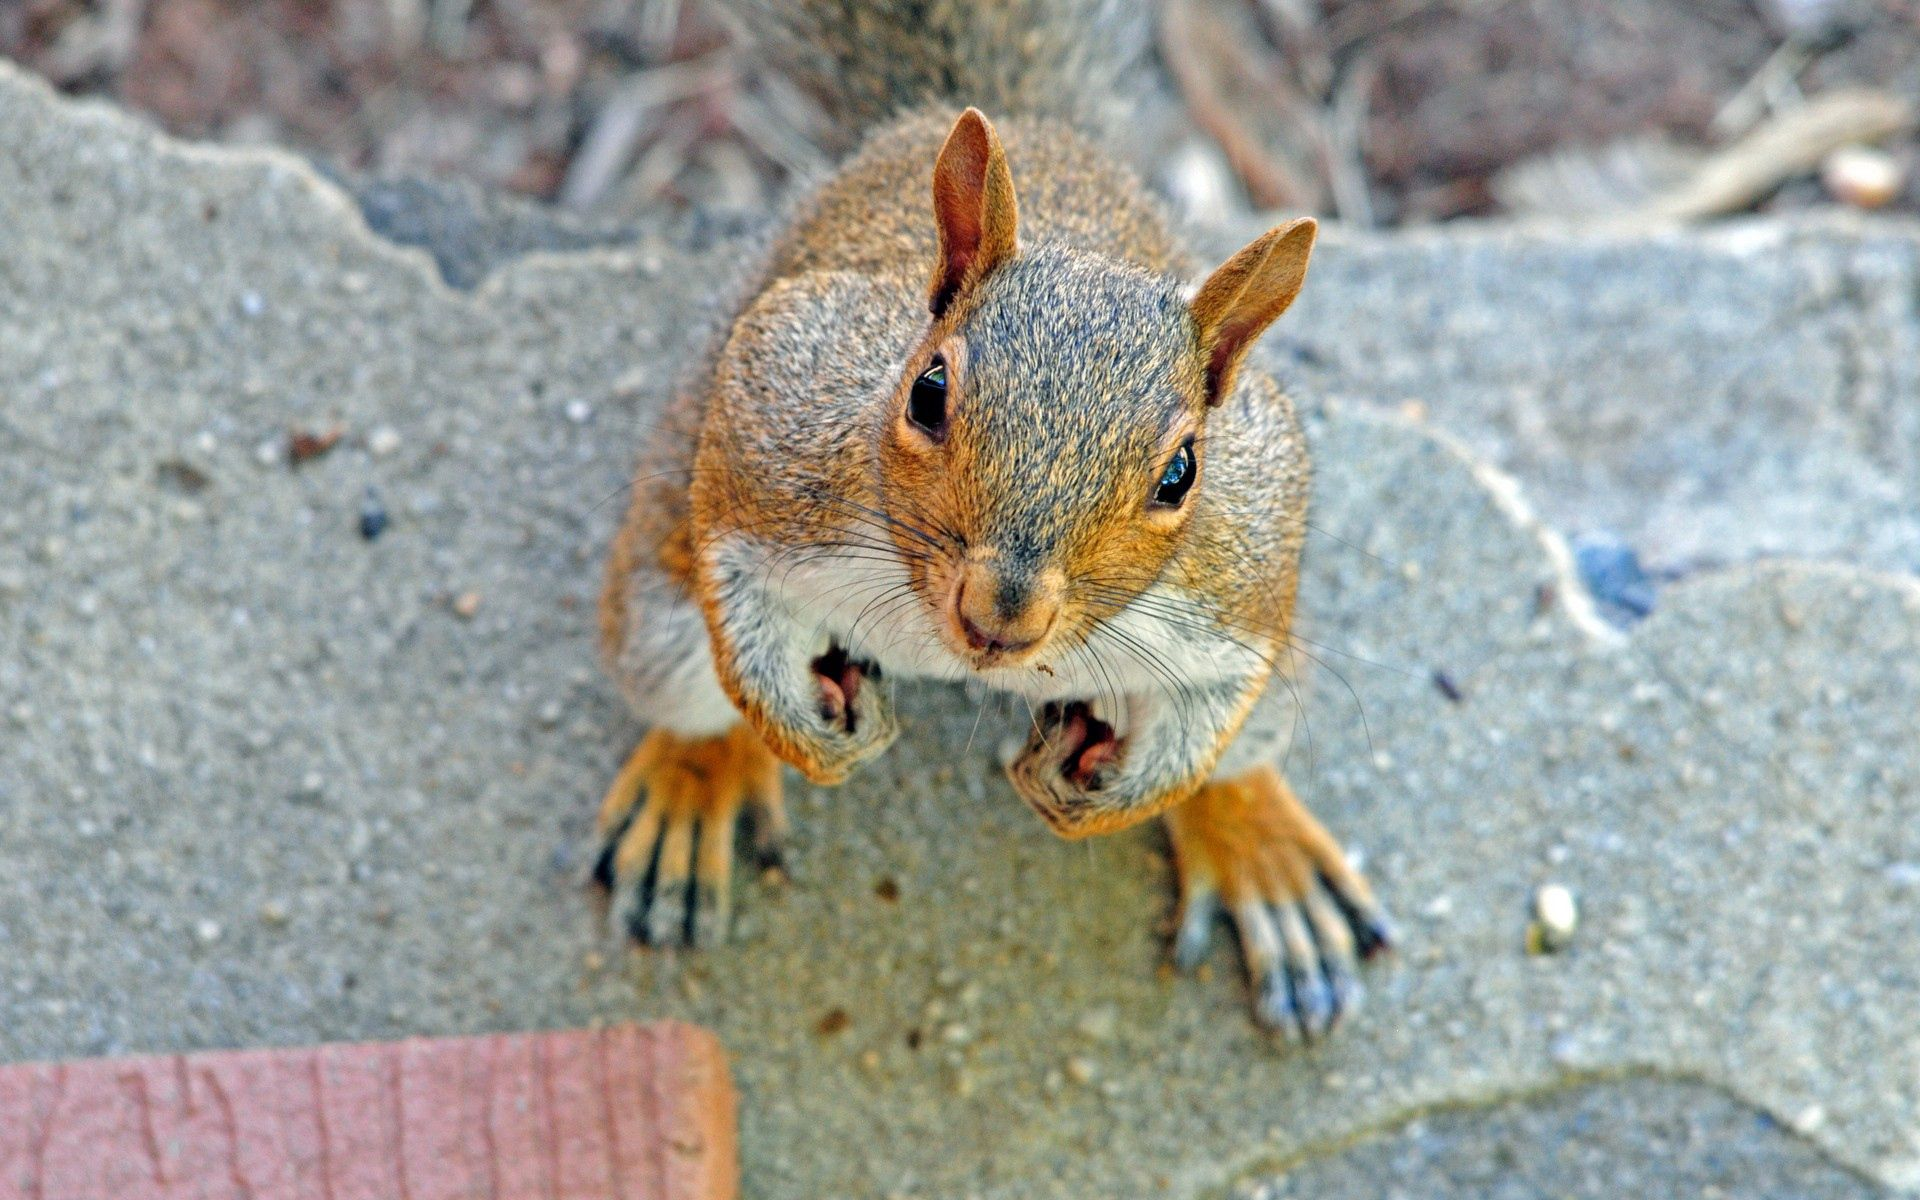 56545 download wallpaper Animals, Squirrel, Muzzle, Expectation, Waiting, Nice, Sweetheart screensavers and pictures for free